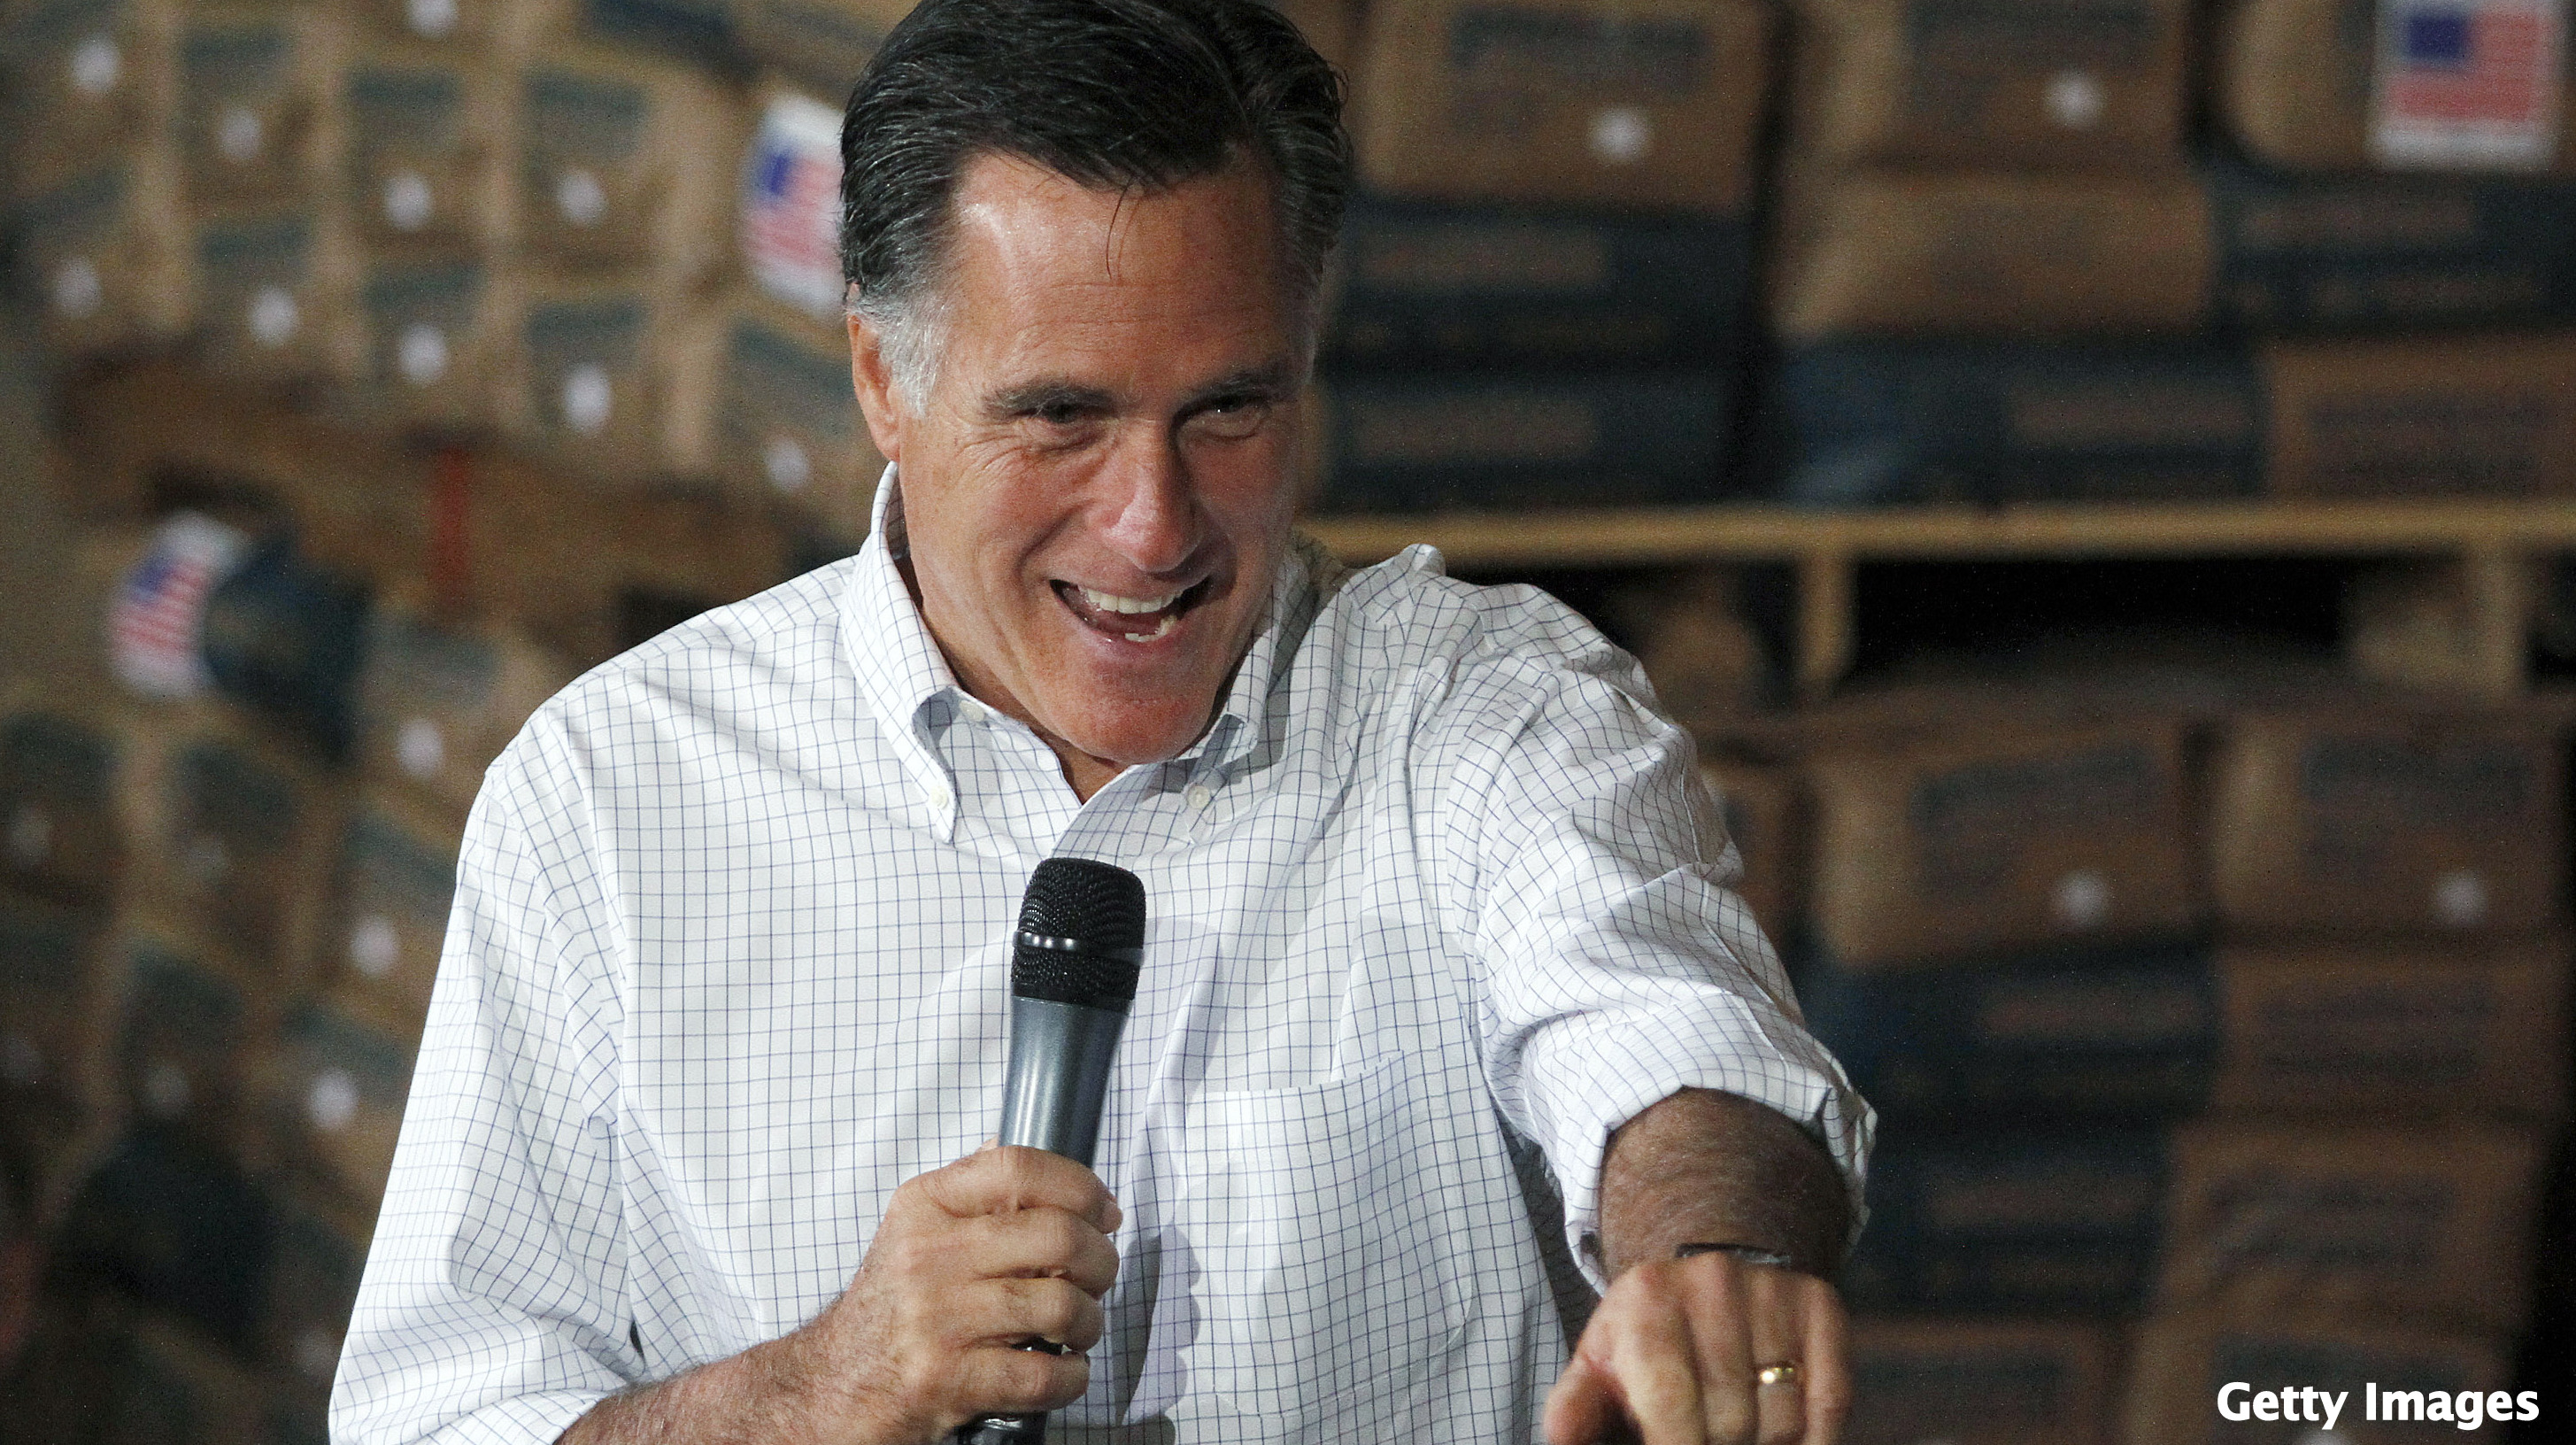 Romney's campaign announces $77 million raised in May